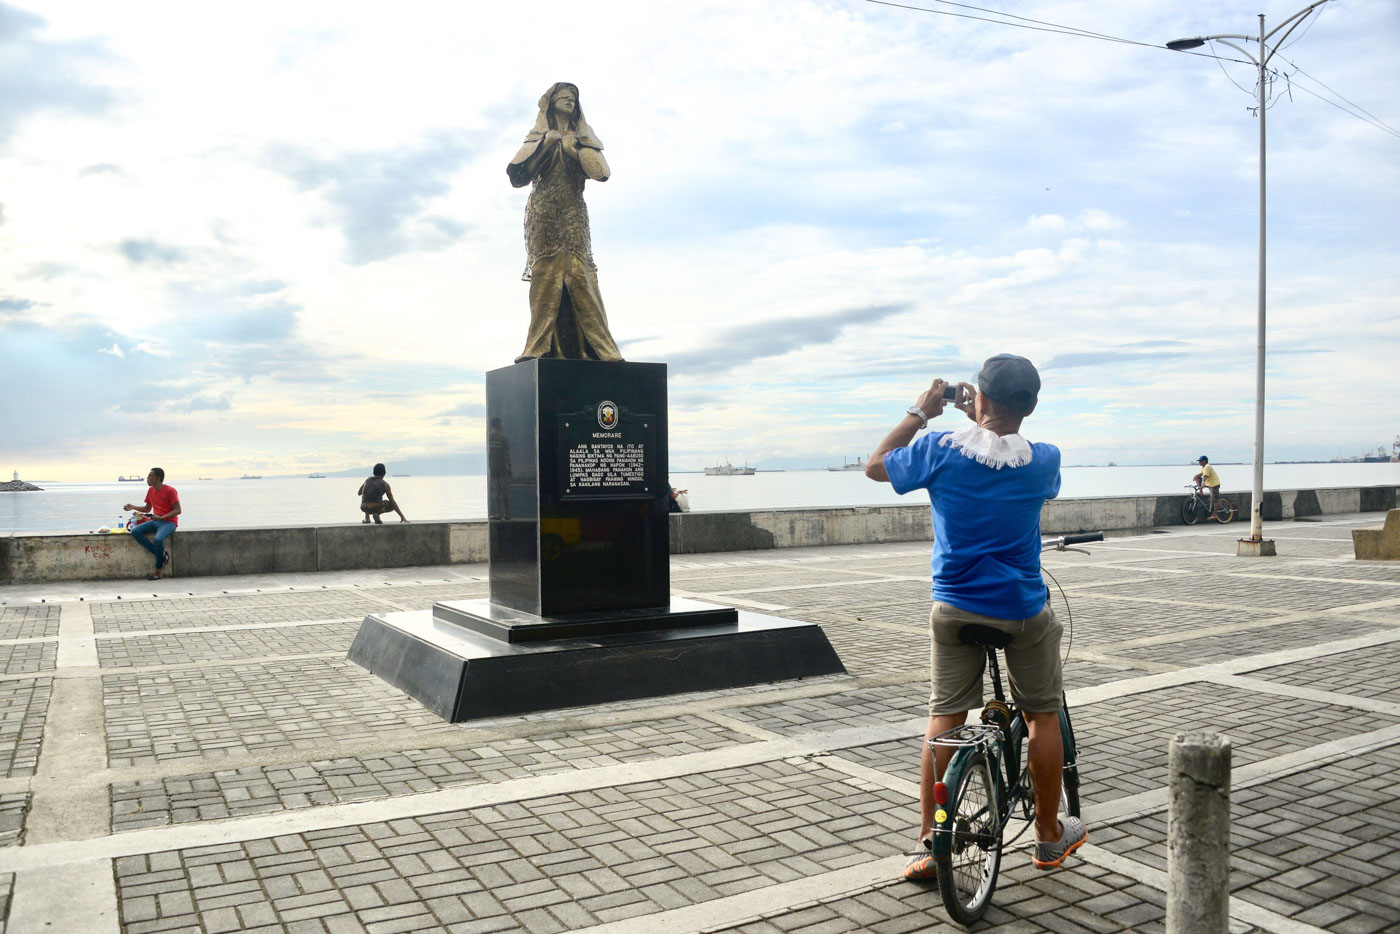 TOURIST ATTRACTION. Controversies aside, the comfort woman statue along Roxas Boulevard has drawn the attention of Manila's passersby. Photo by Angie de Silva/Rappler